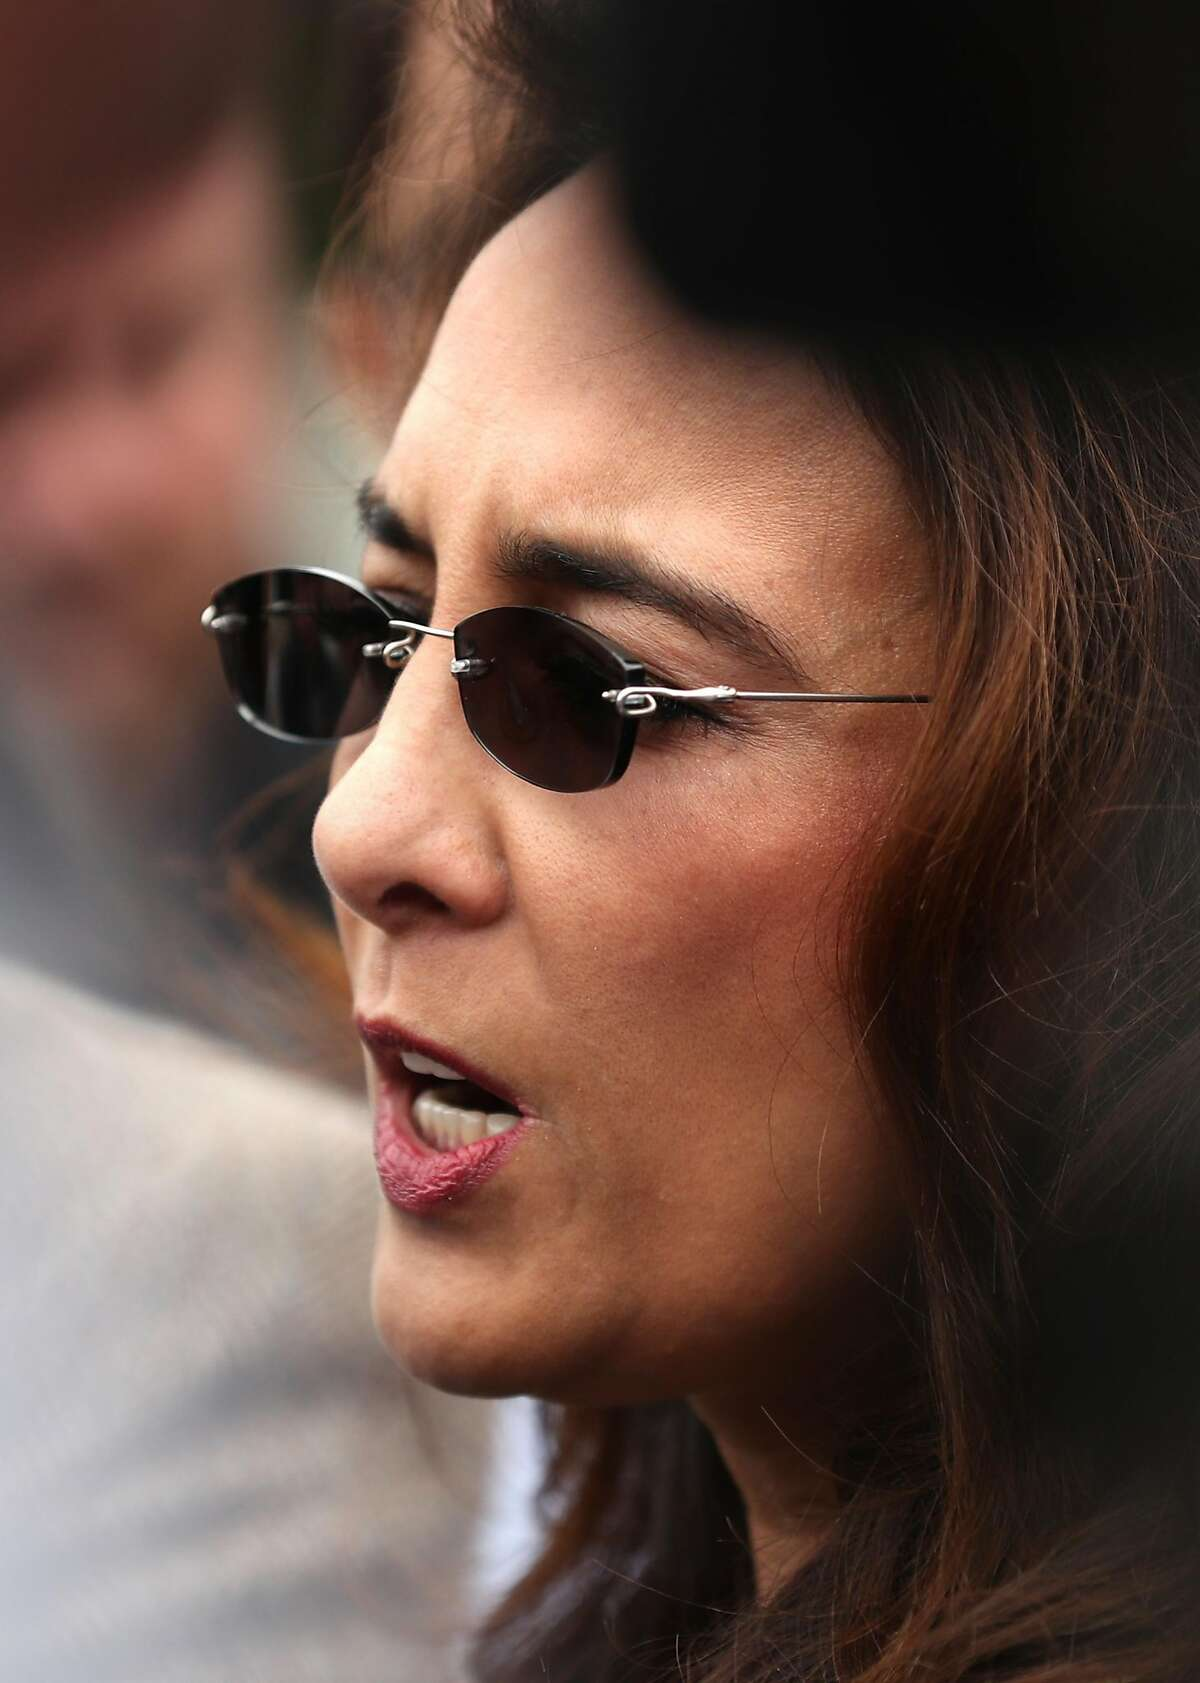 After the cancellation of Ann Coulter's scheduled Thursday appearance in Sproul Plaza, Berkeley College Republicans' attorney Harmeet Dhillon speaks during press conference in Berkeley, Calif., on Wednesday, April 26, 2017.